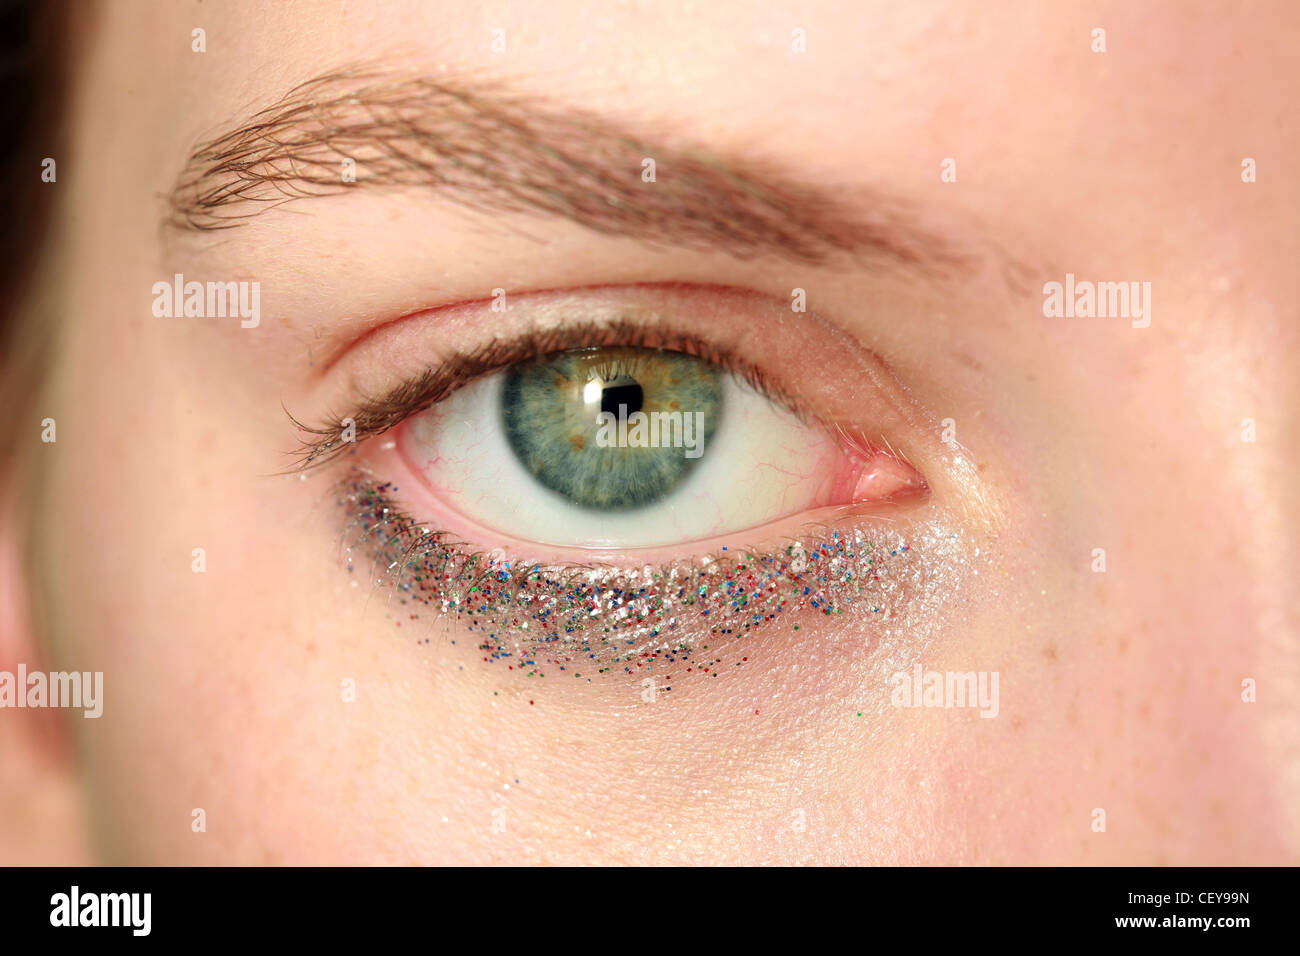 Close Up Multi Coloured Glittery Under Eye Makeup Open Eye Looking